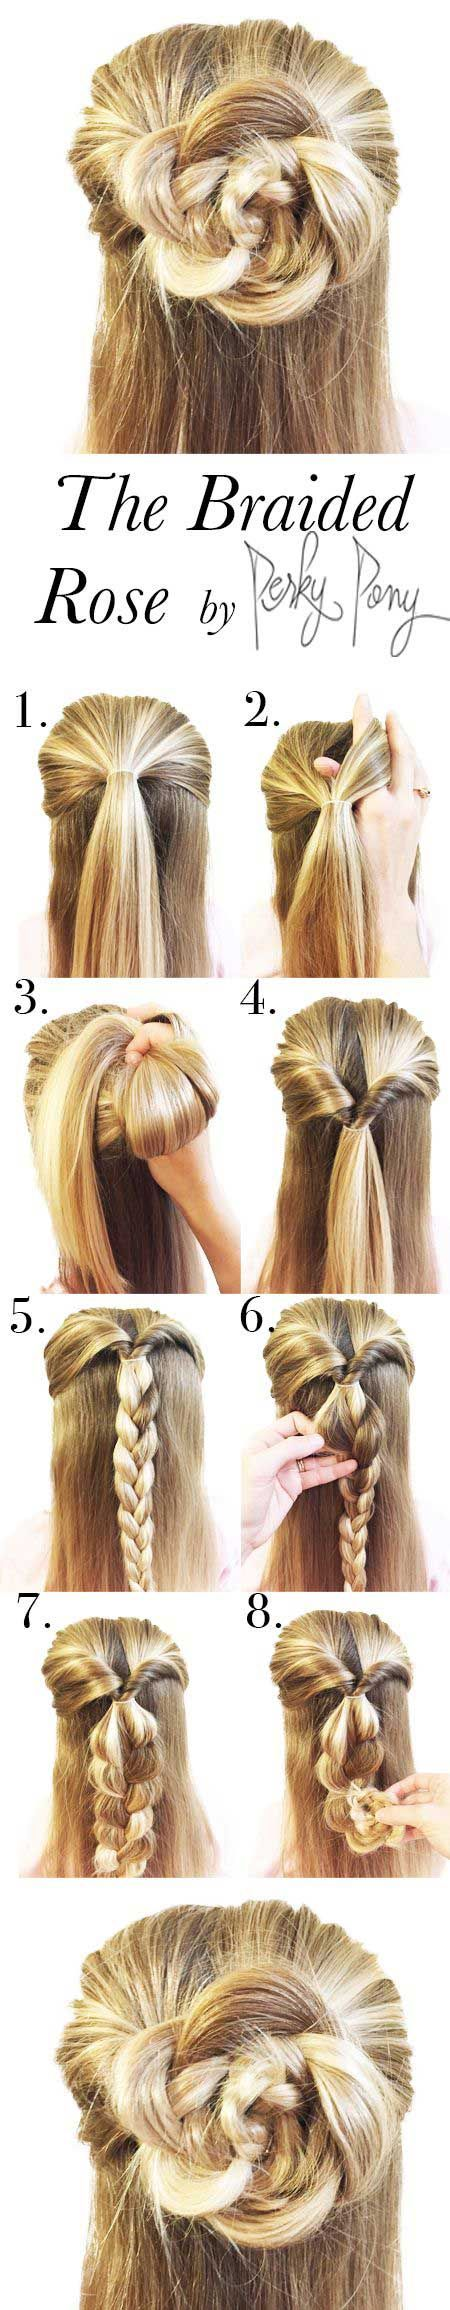 By now, we're all well aware that the half-up half-down hairstyle is very much A Thing in the beauty world. It started with messy half top knots that were perfect for lazy days when we still wanted to look cute, but has expanded to even be perfect for fancy occasions. If you're looking for the perfect prom hairstyle, look no further. These half-up half-down tutorials are simple, beautiful, and ready to make a statement.